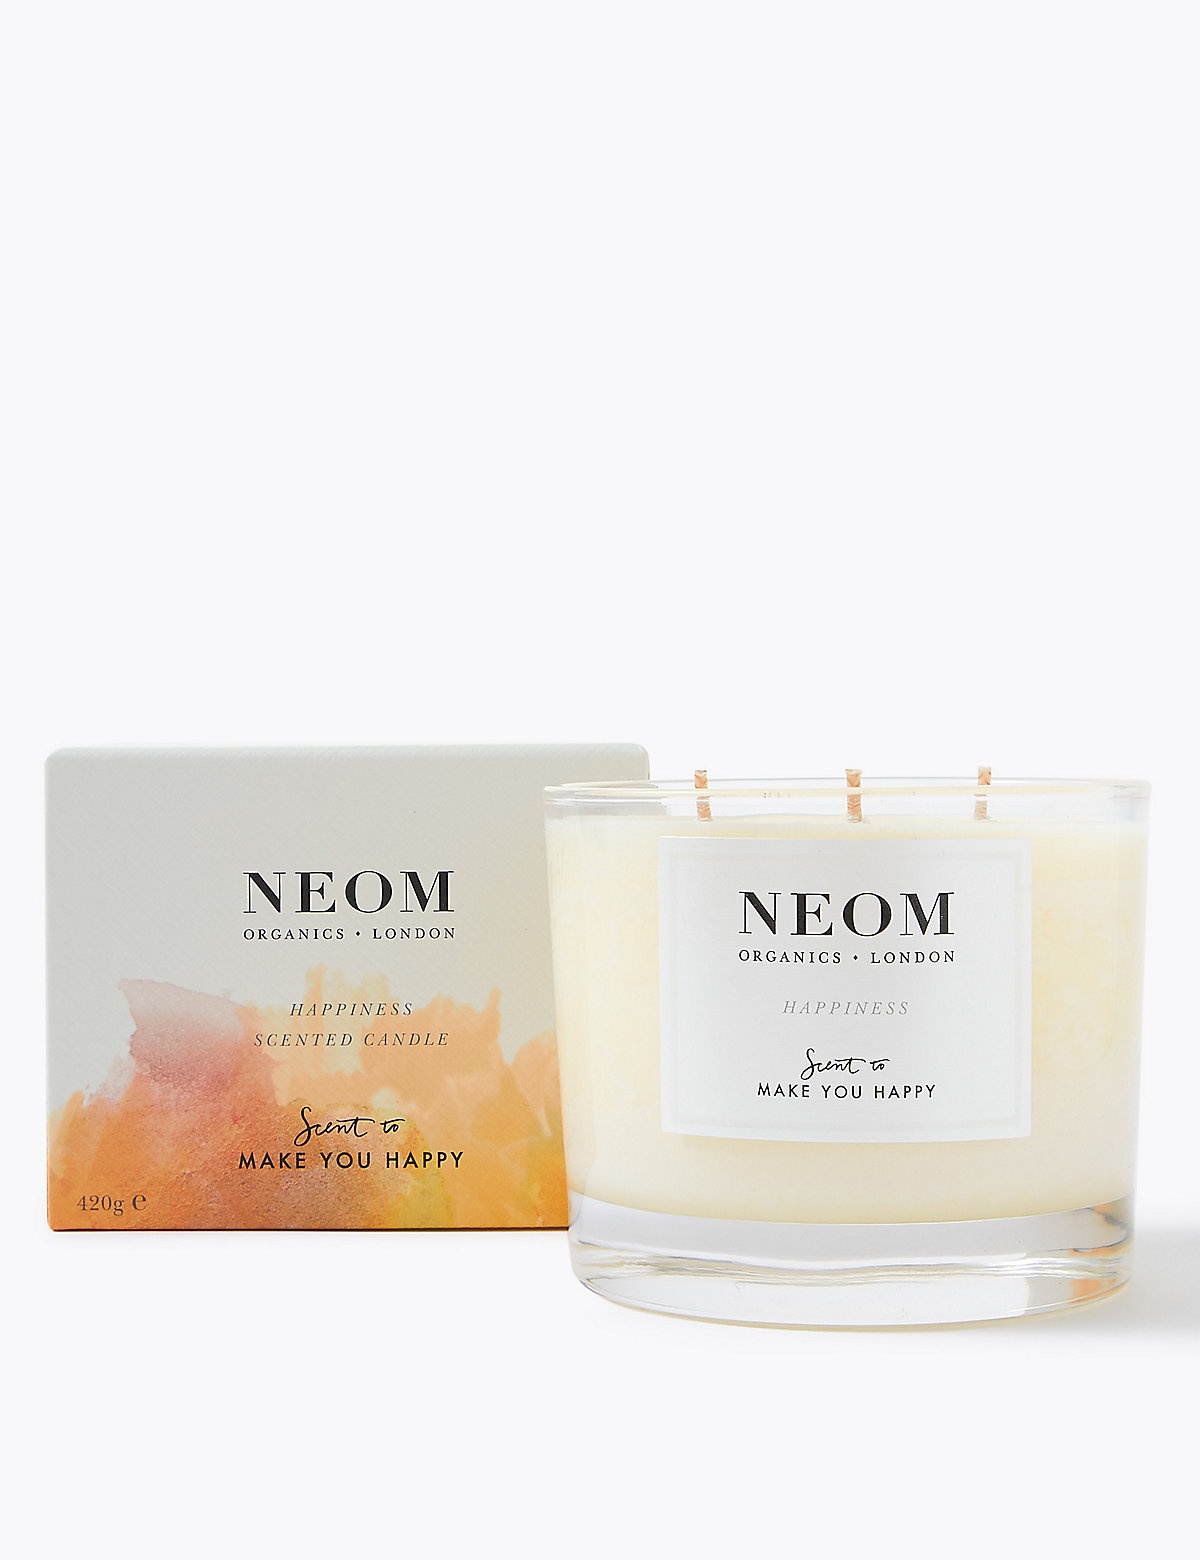 Neom Happiness 3 Wick Candle 420g